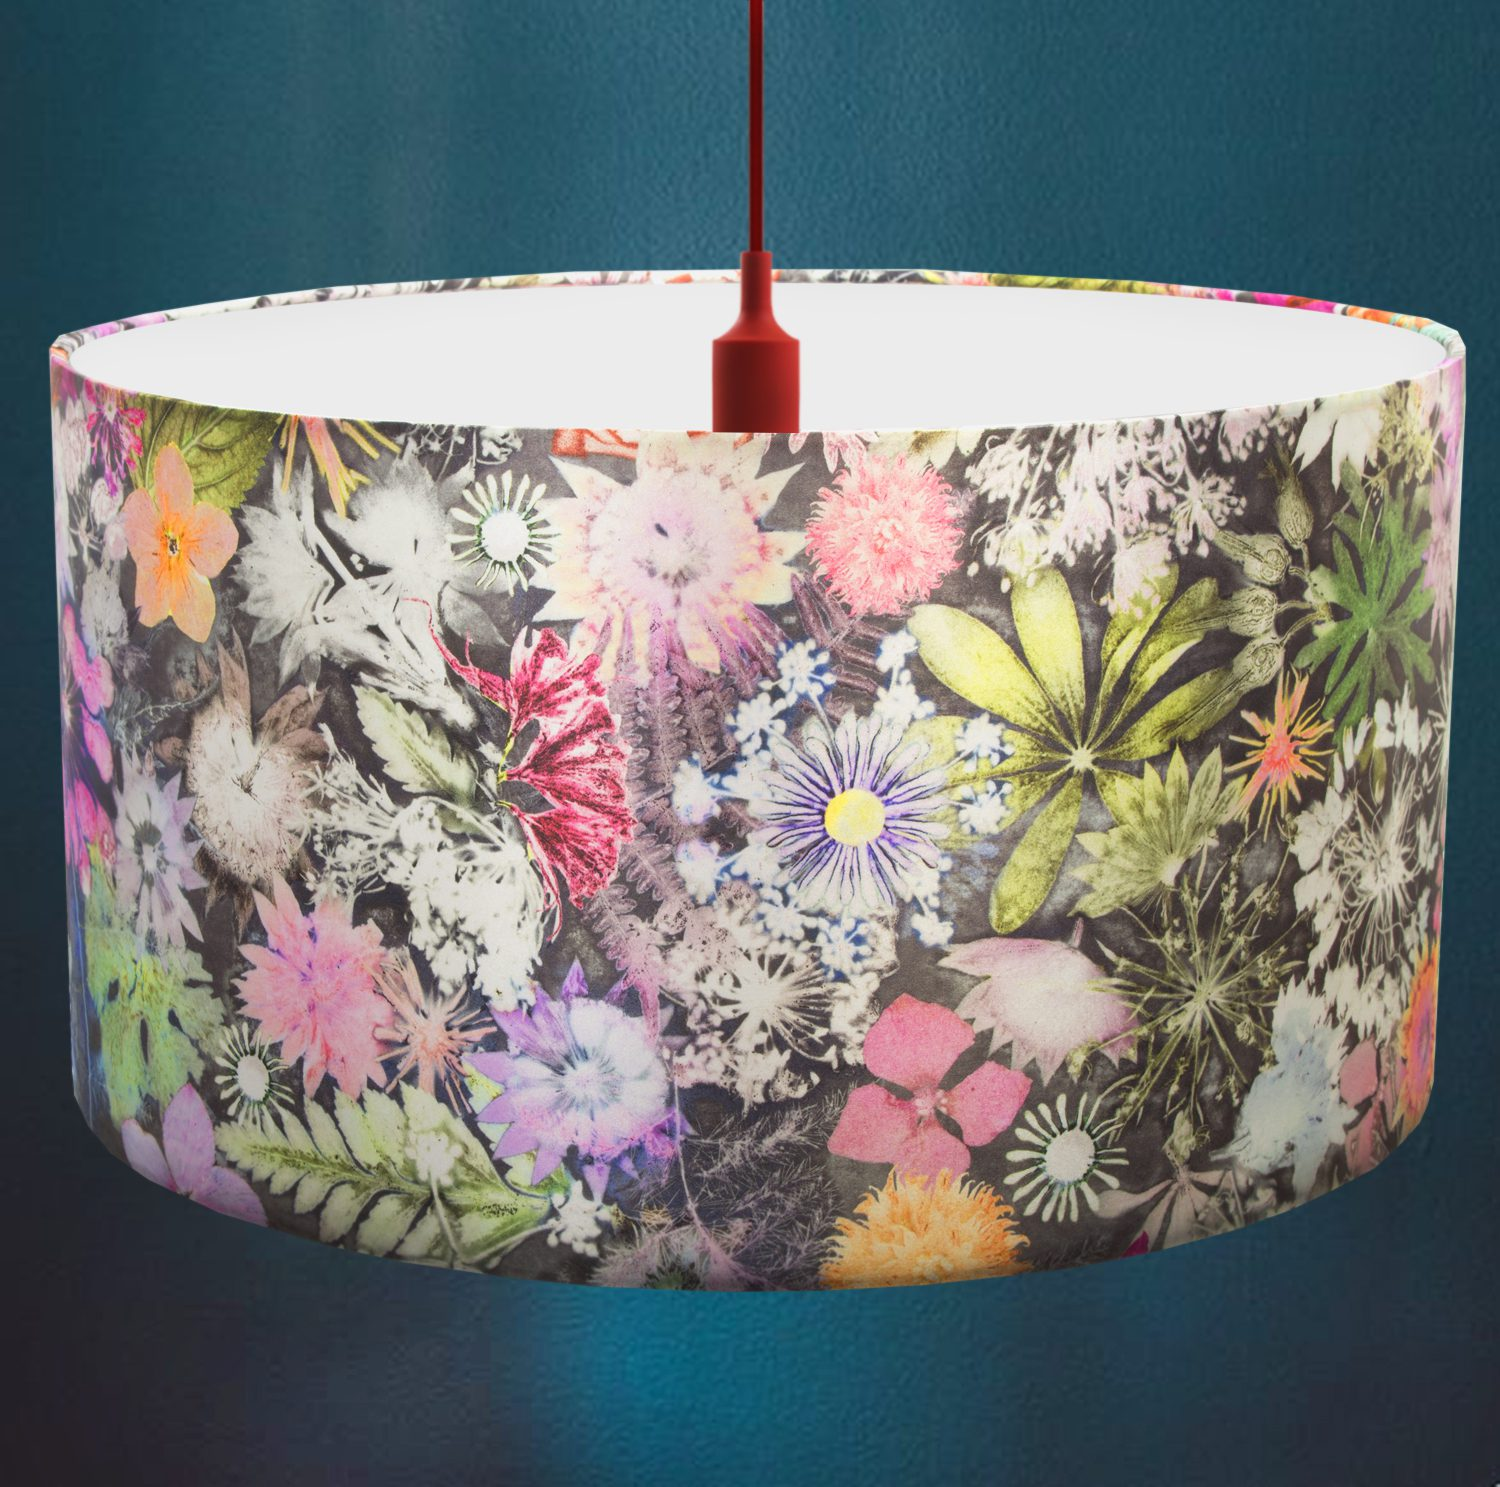 Cascades of Colour | Green & Pink Lamp Shade For The Living Room